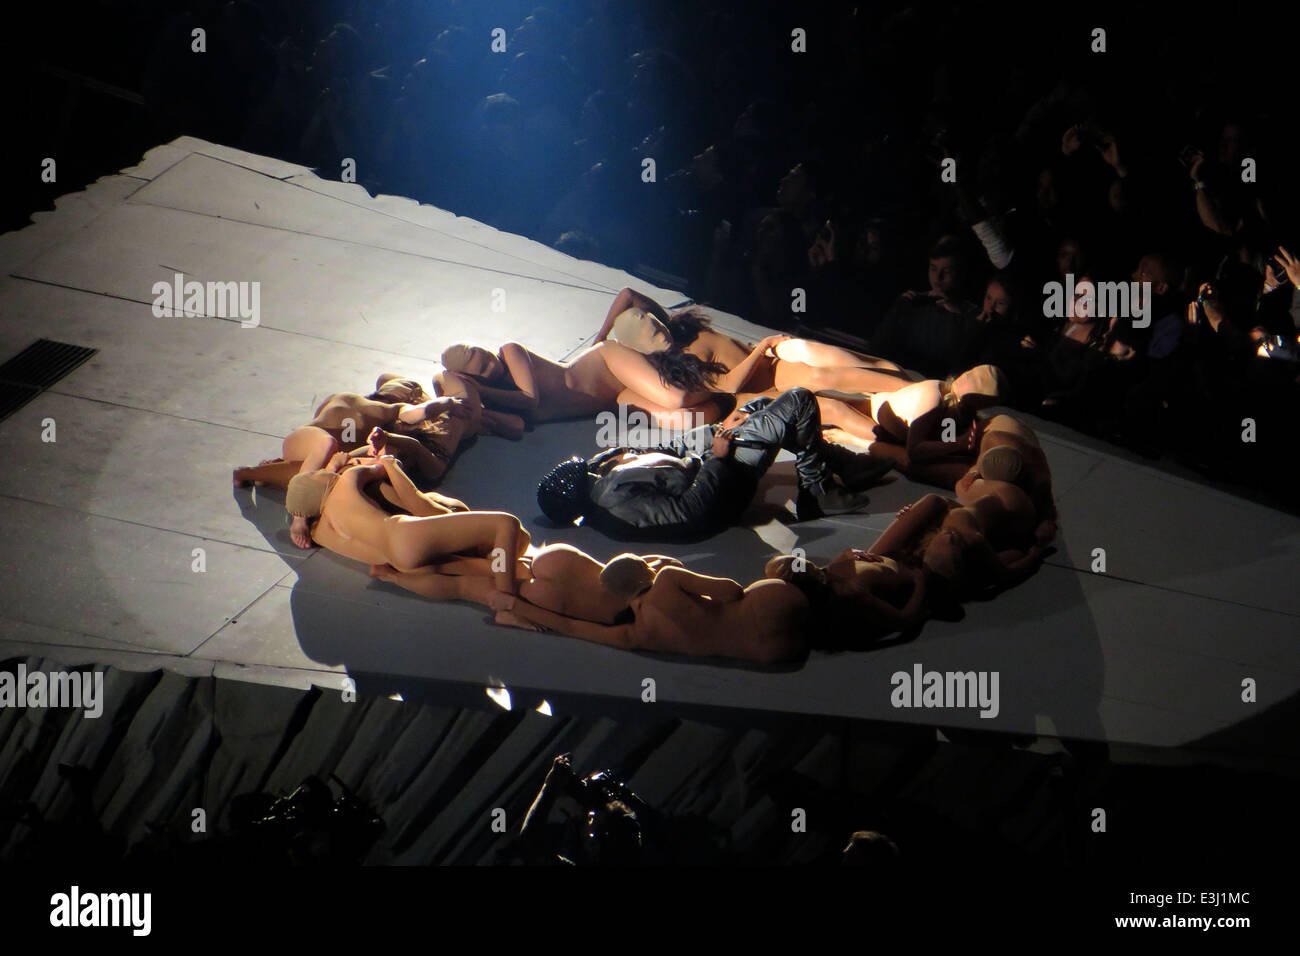 High Quality Kanye West Performs To A Sold Out Crowd At Madison Square Garden As Part Of  His U0027Yeezusu0027 Tour. The Eccentric Rapper Performed The Entire Concert  Wearing A ... Good Looking